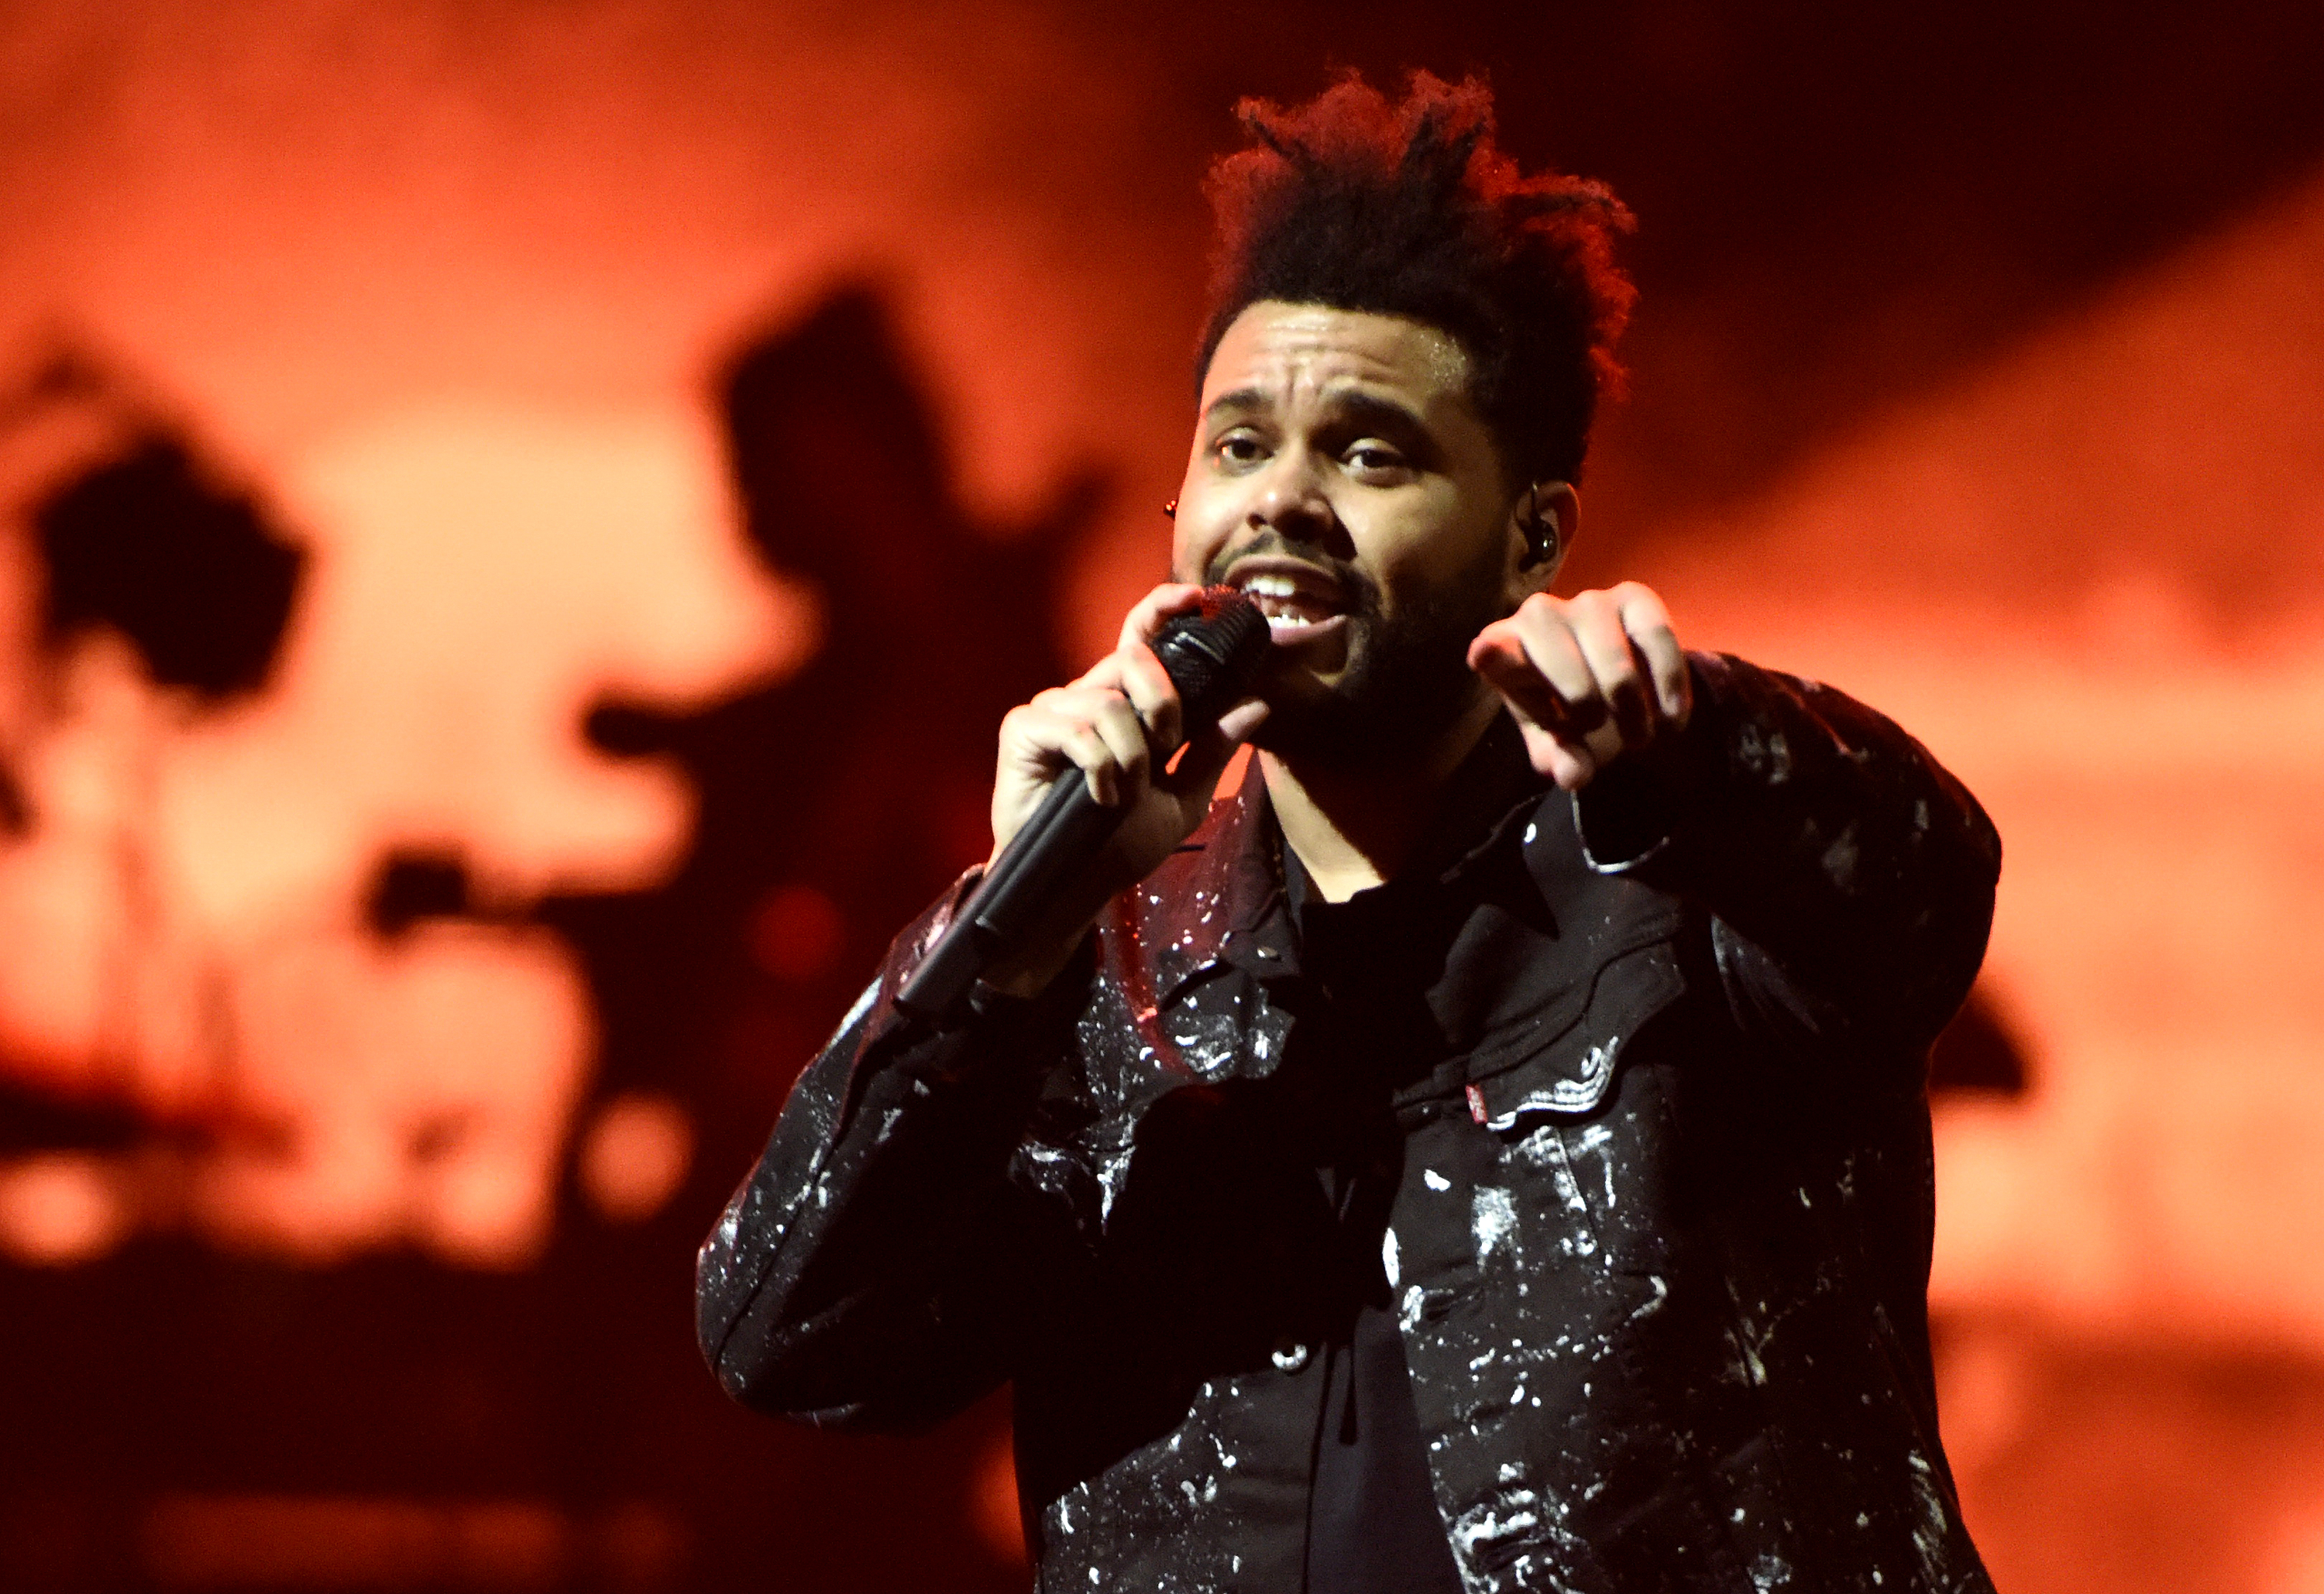 The Weeknd performs during his  Starboy World Tour  at Golden 1 Center on October 11, 2017 in Sacramento, California.